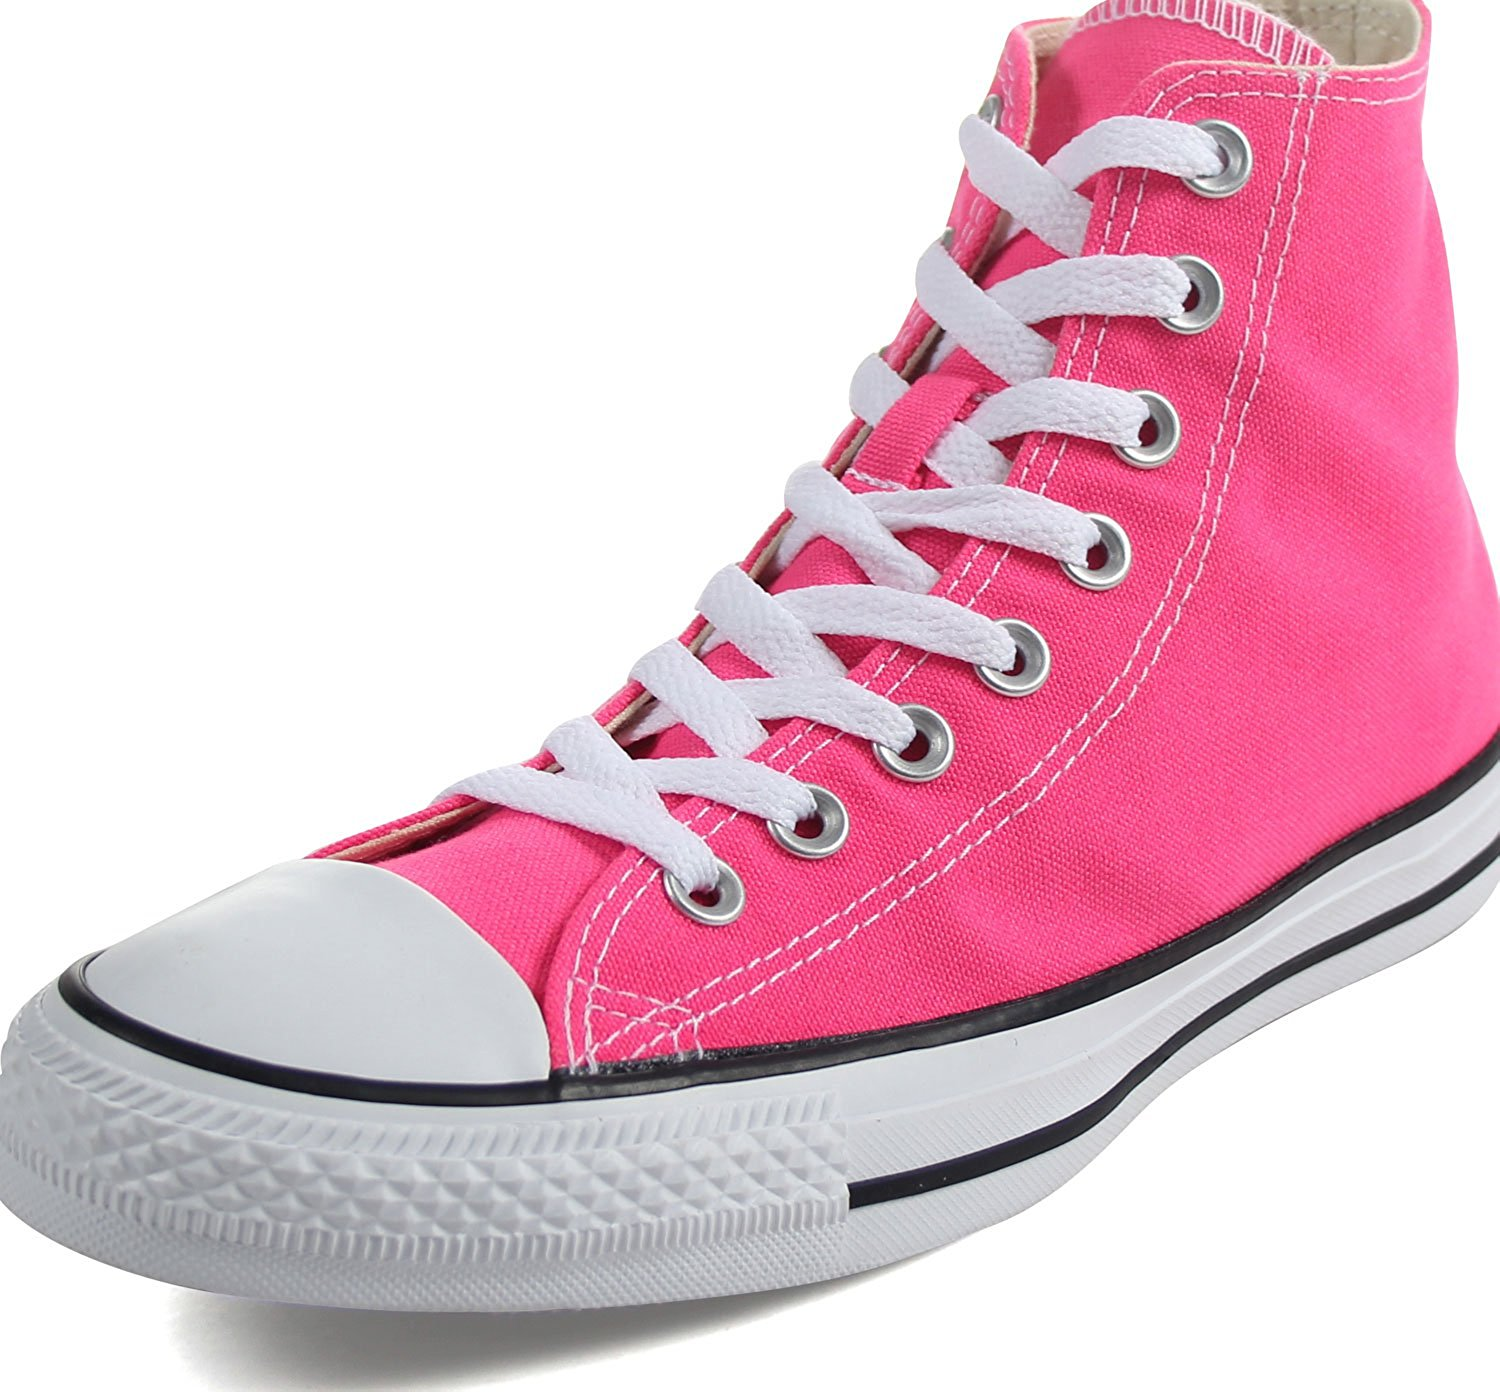 26cca6d65309de Converse Unisex Chuck Taylor All Star Seasonal High Top Pink Pow ...